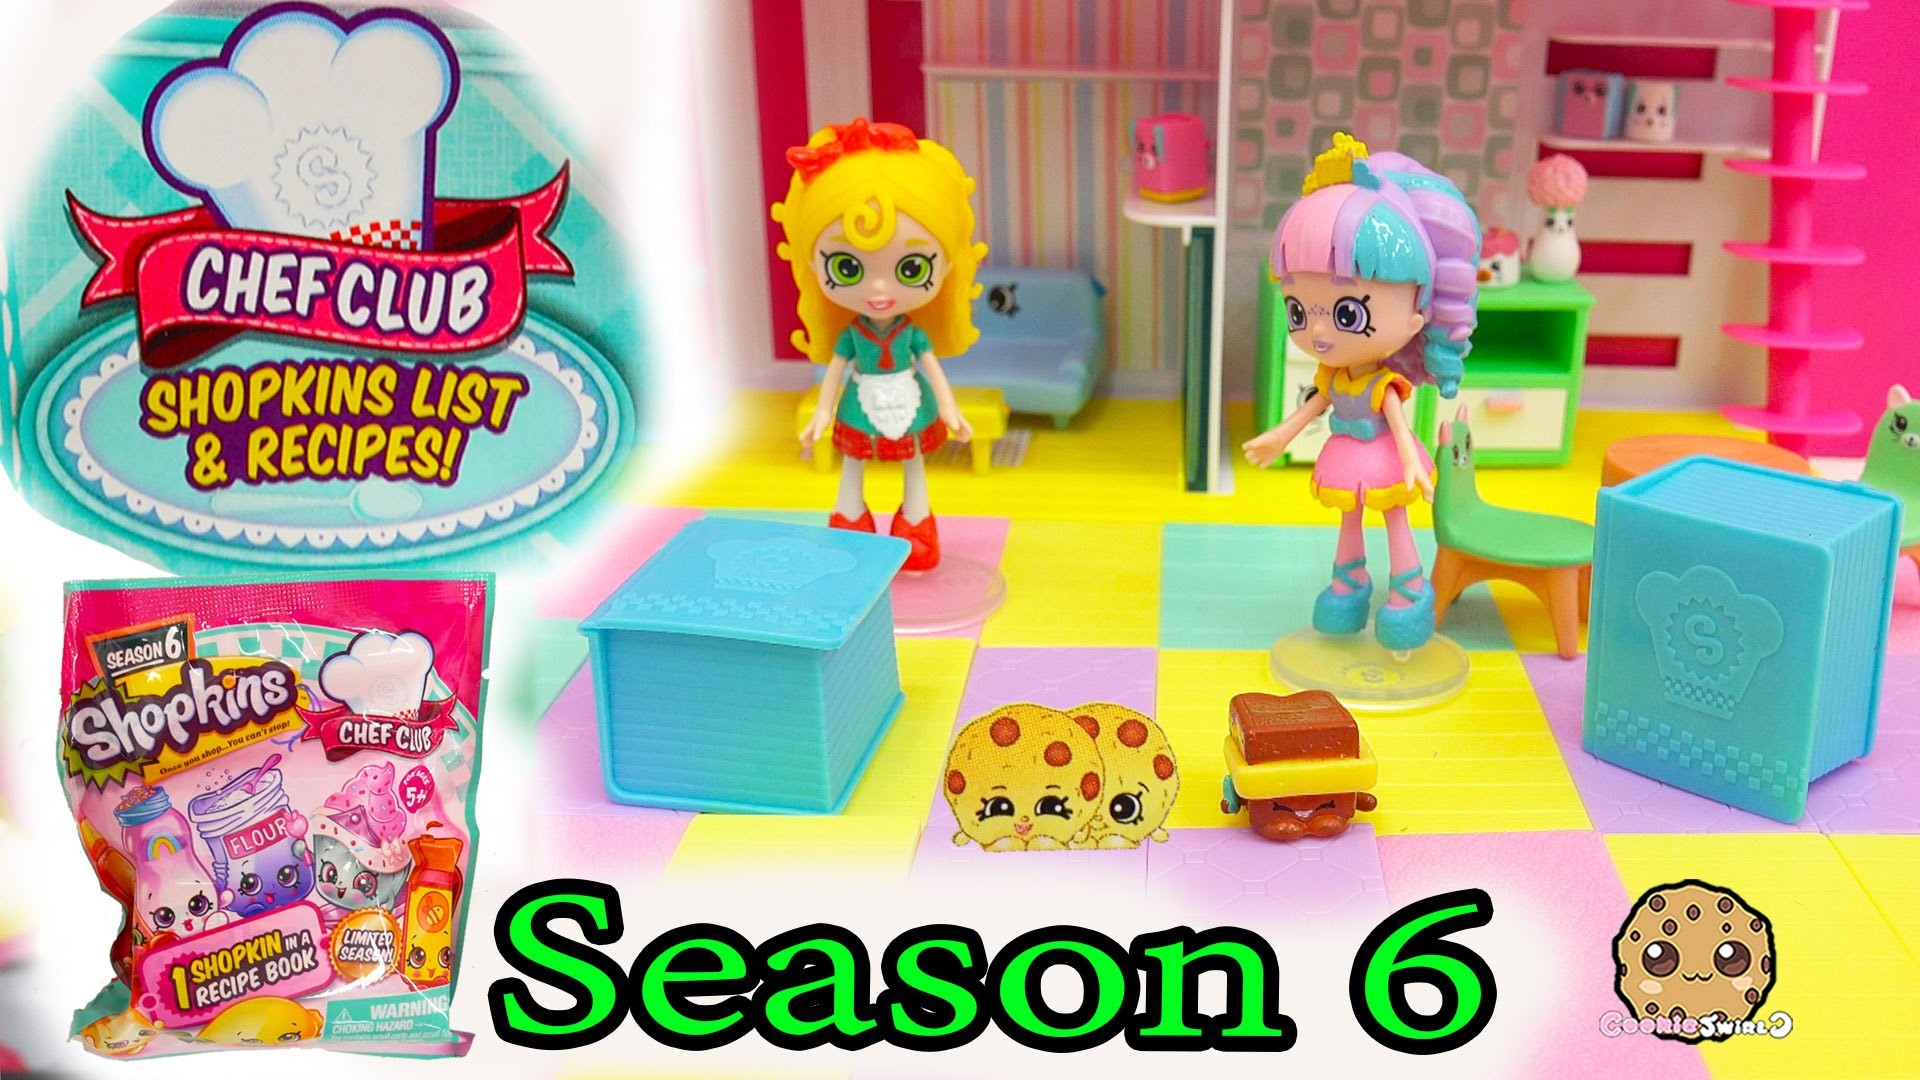 2 Season 6 Shopkins Chef Club Surprise Blind Bags with Mystery Shopkins  Inside Recipe Book – YouTube